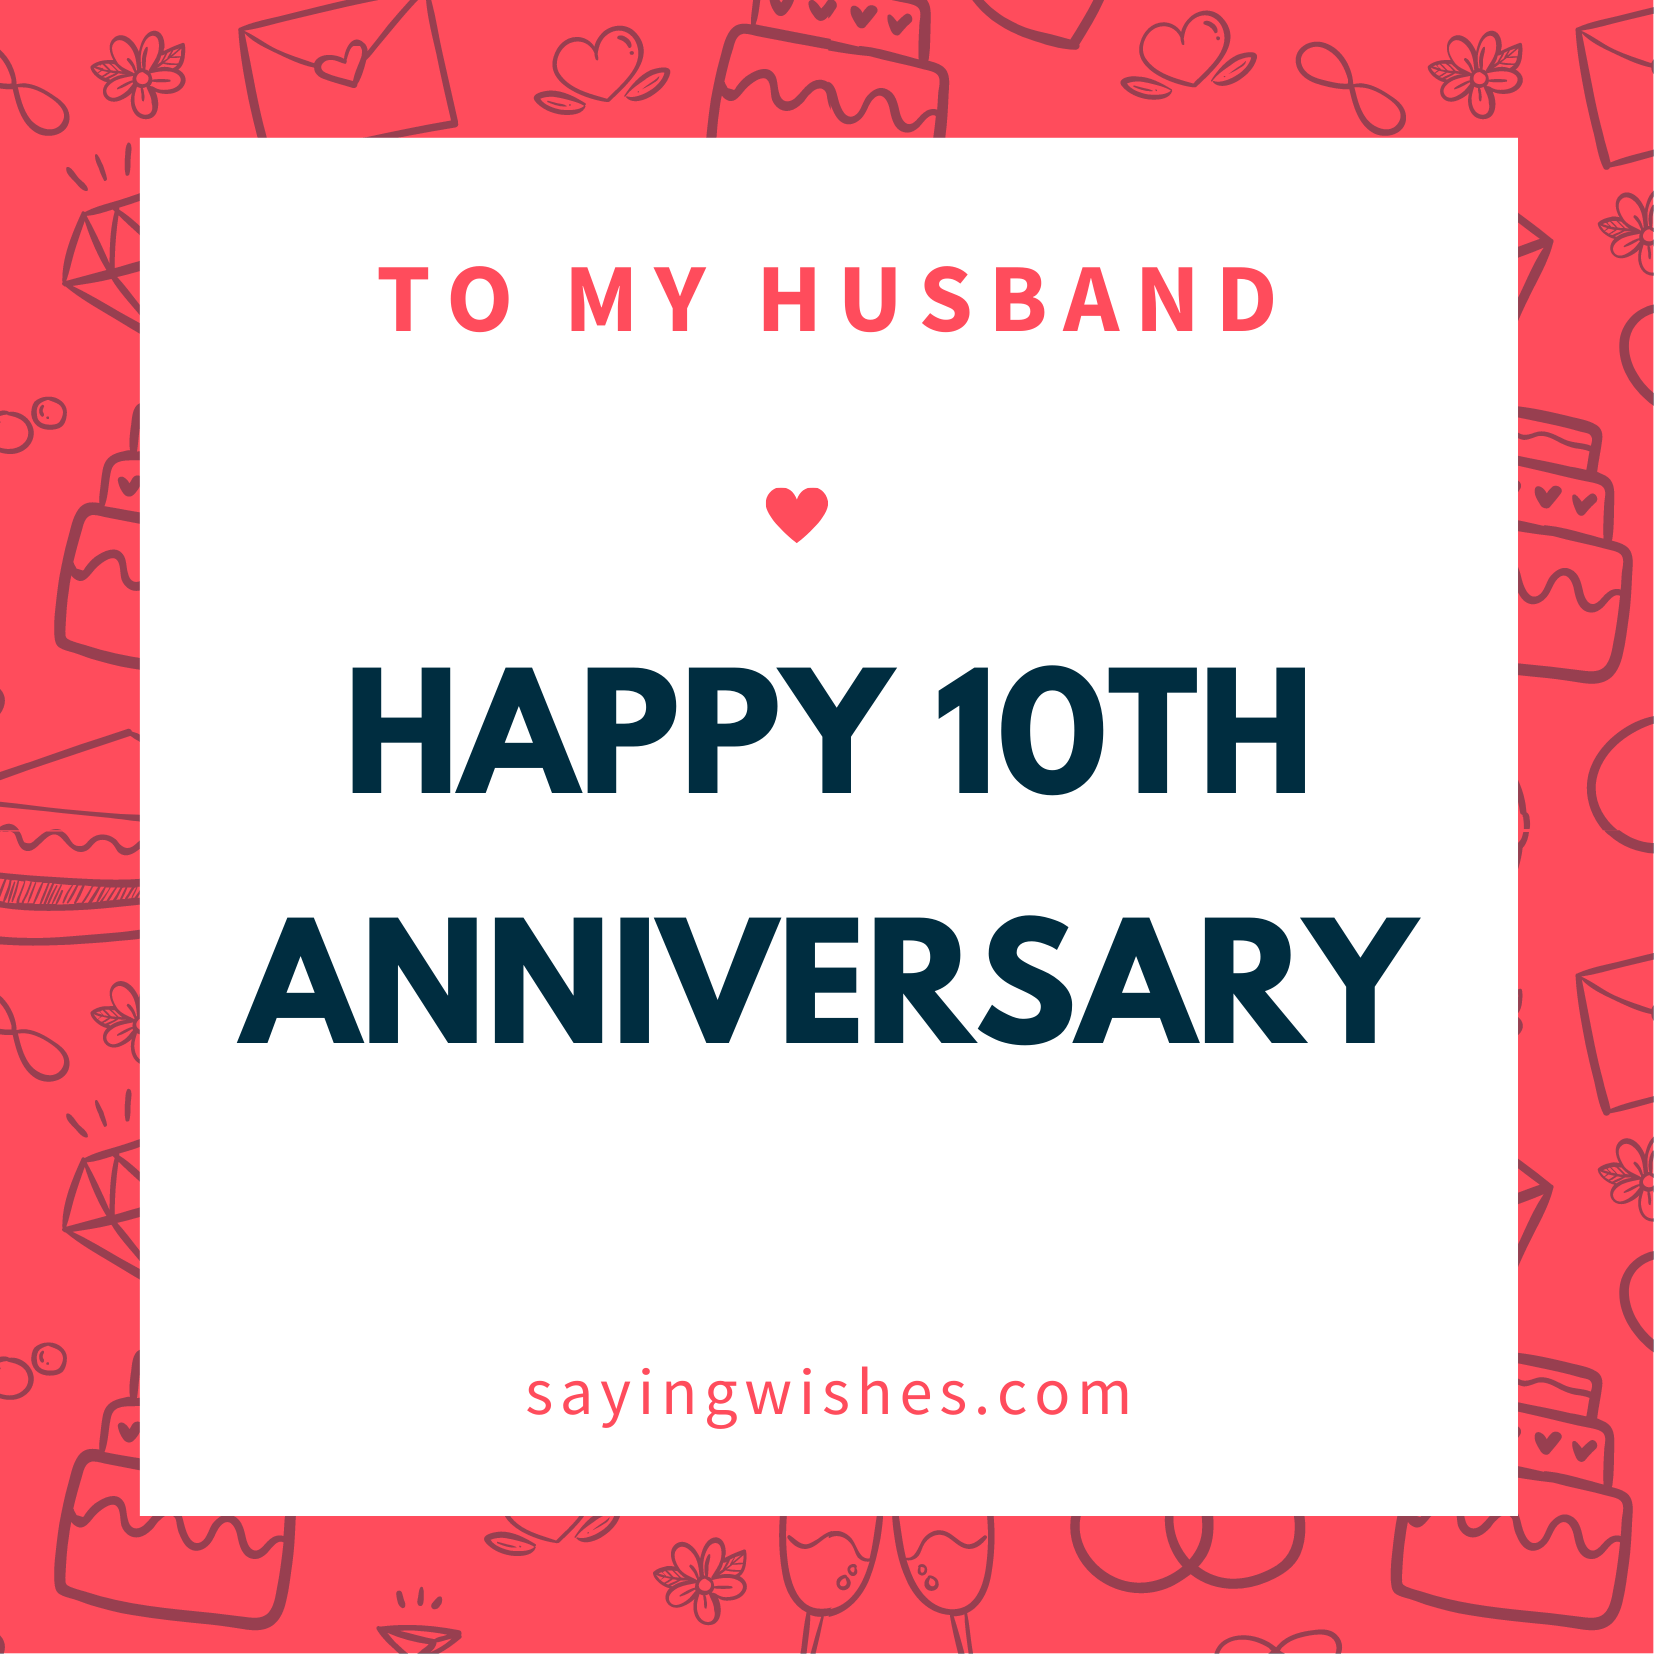 happy 10th anniversary wishes for husband